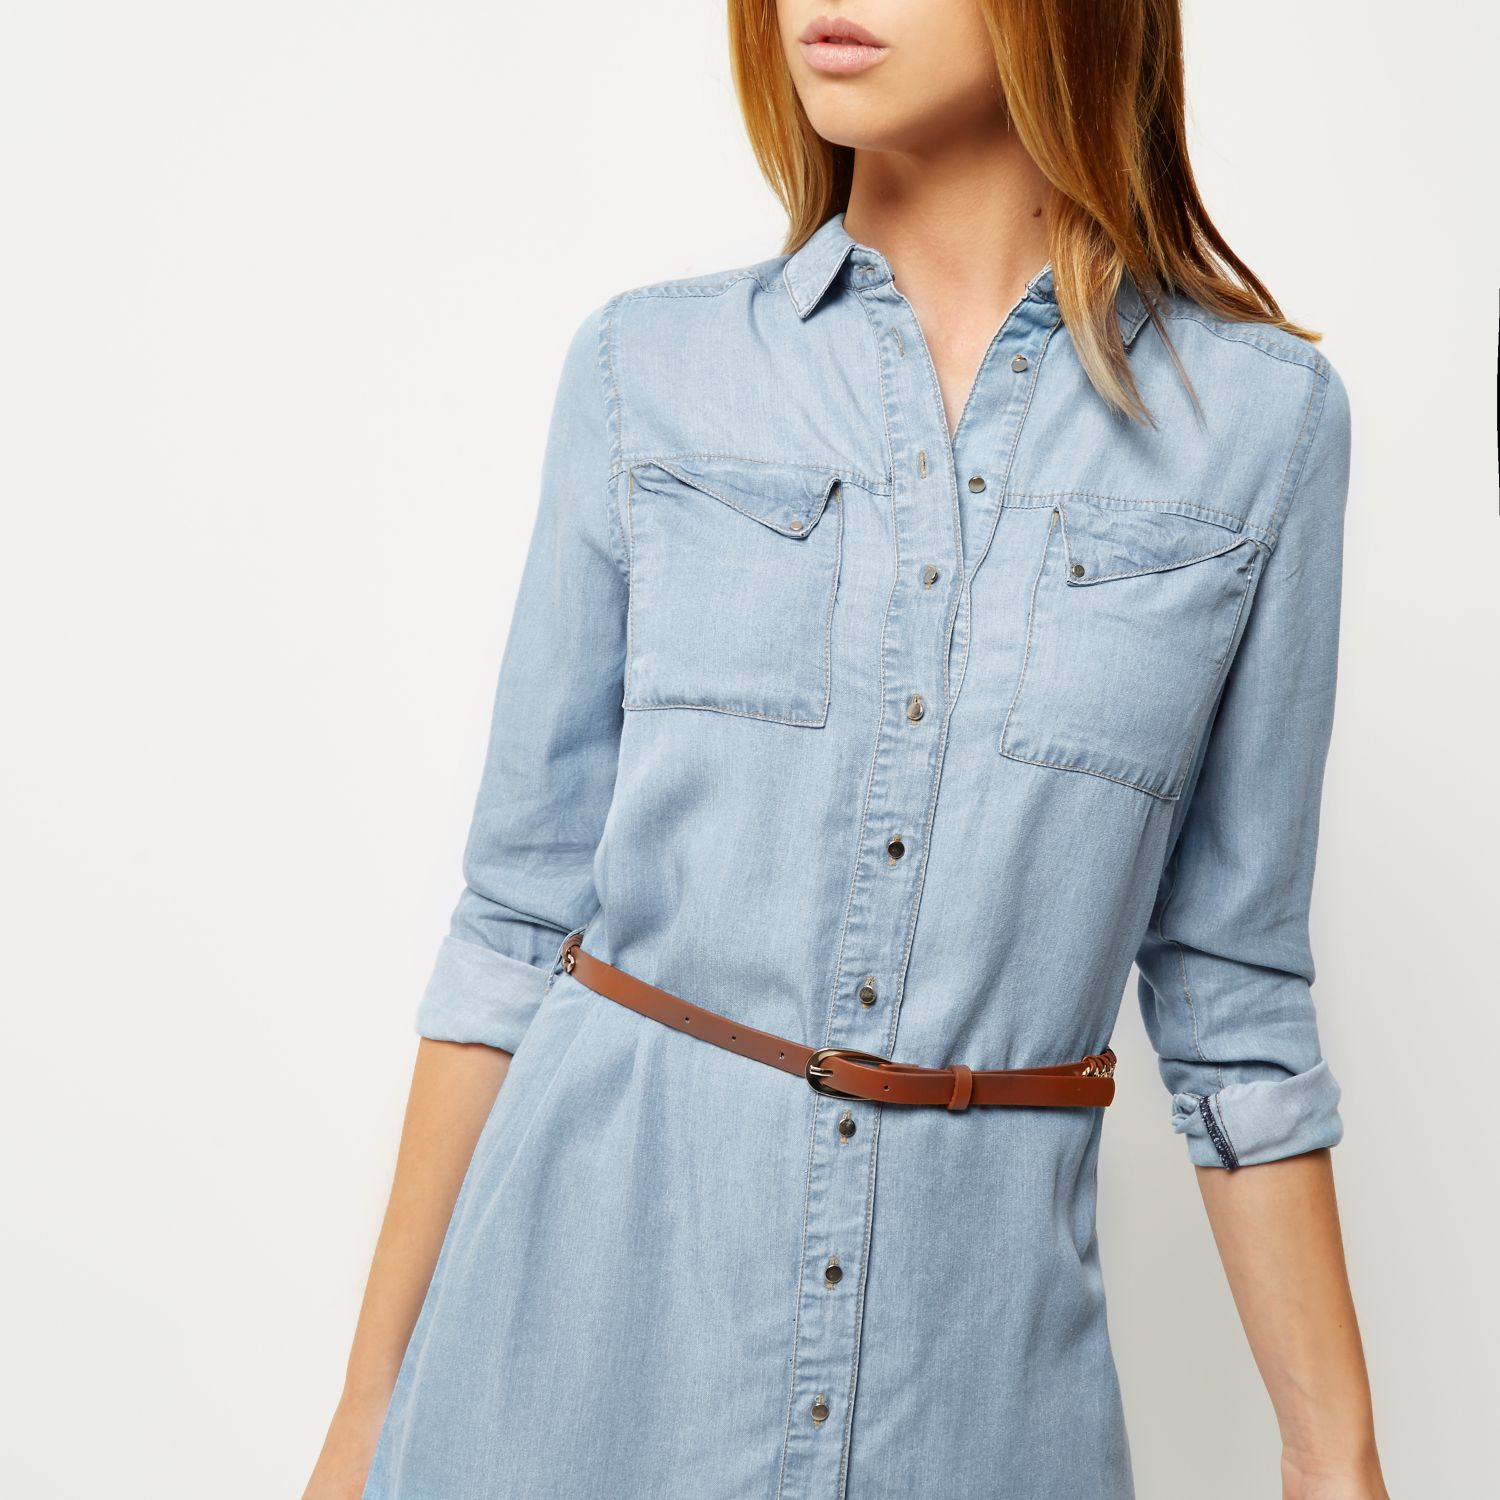 Lyst river island light blue denim shirt dress in blue for Blue denim shirt for womens